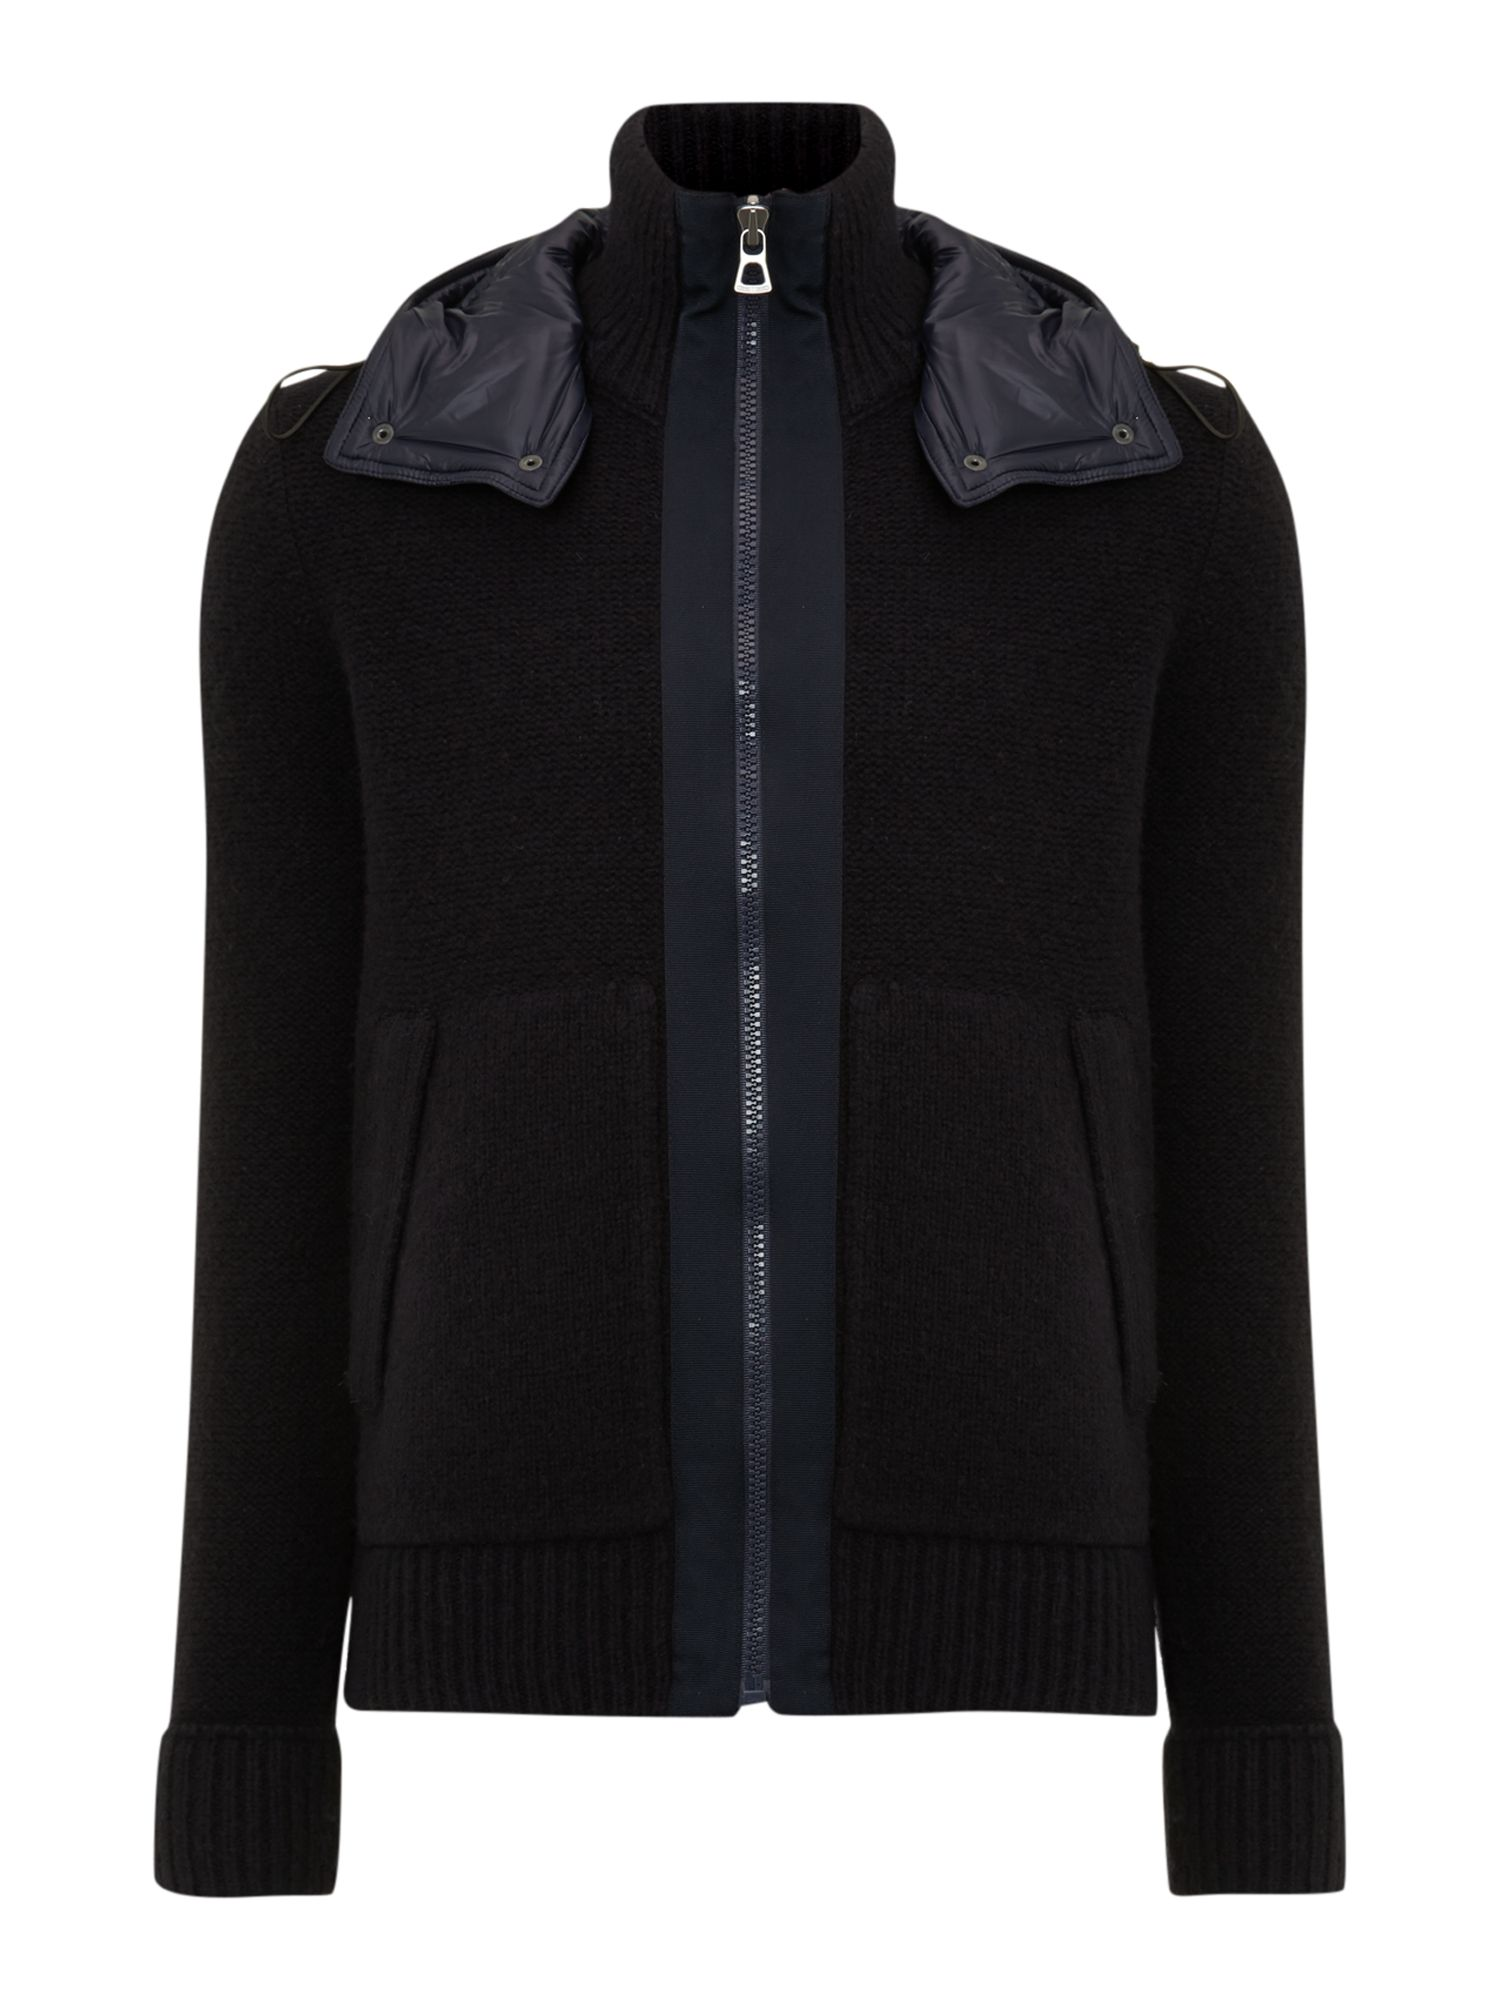 Knitted nylon jacket